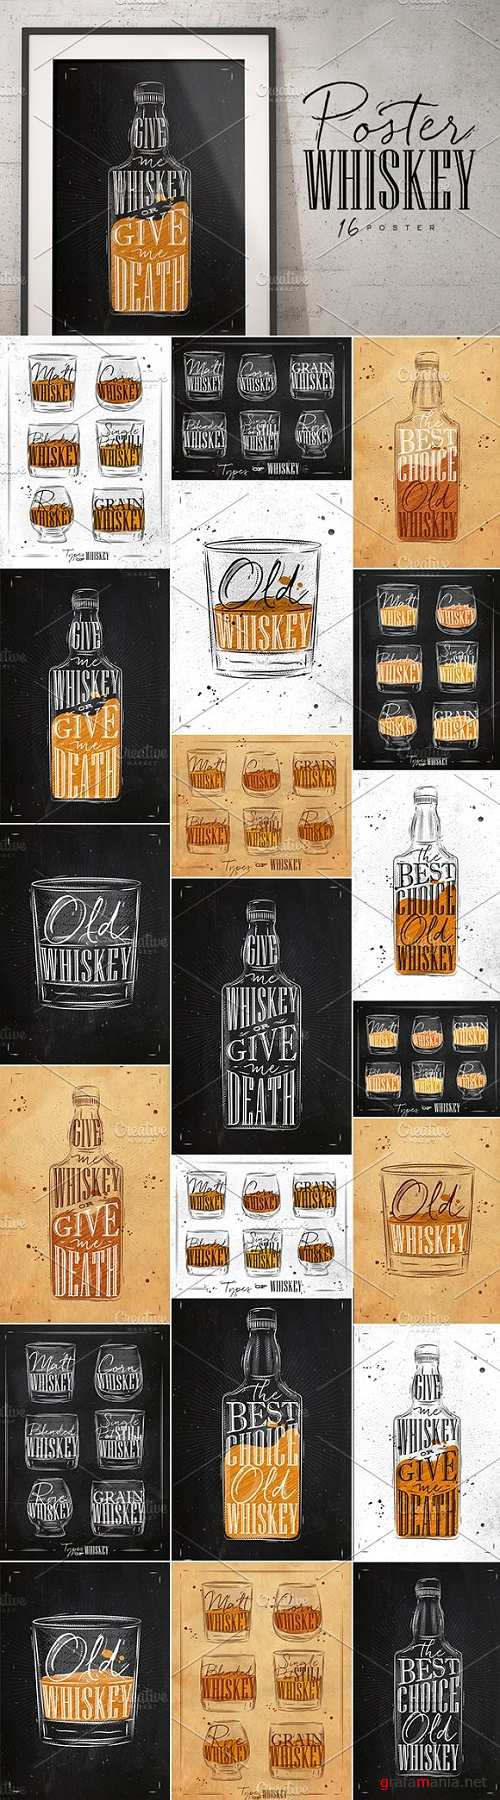 Poster Whiskey - 1344203